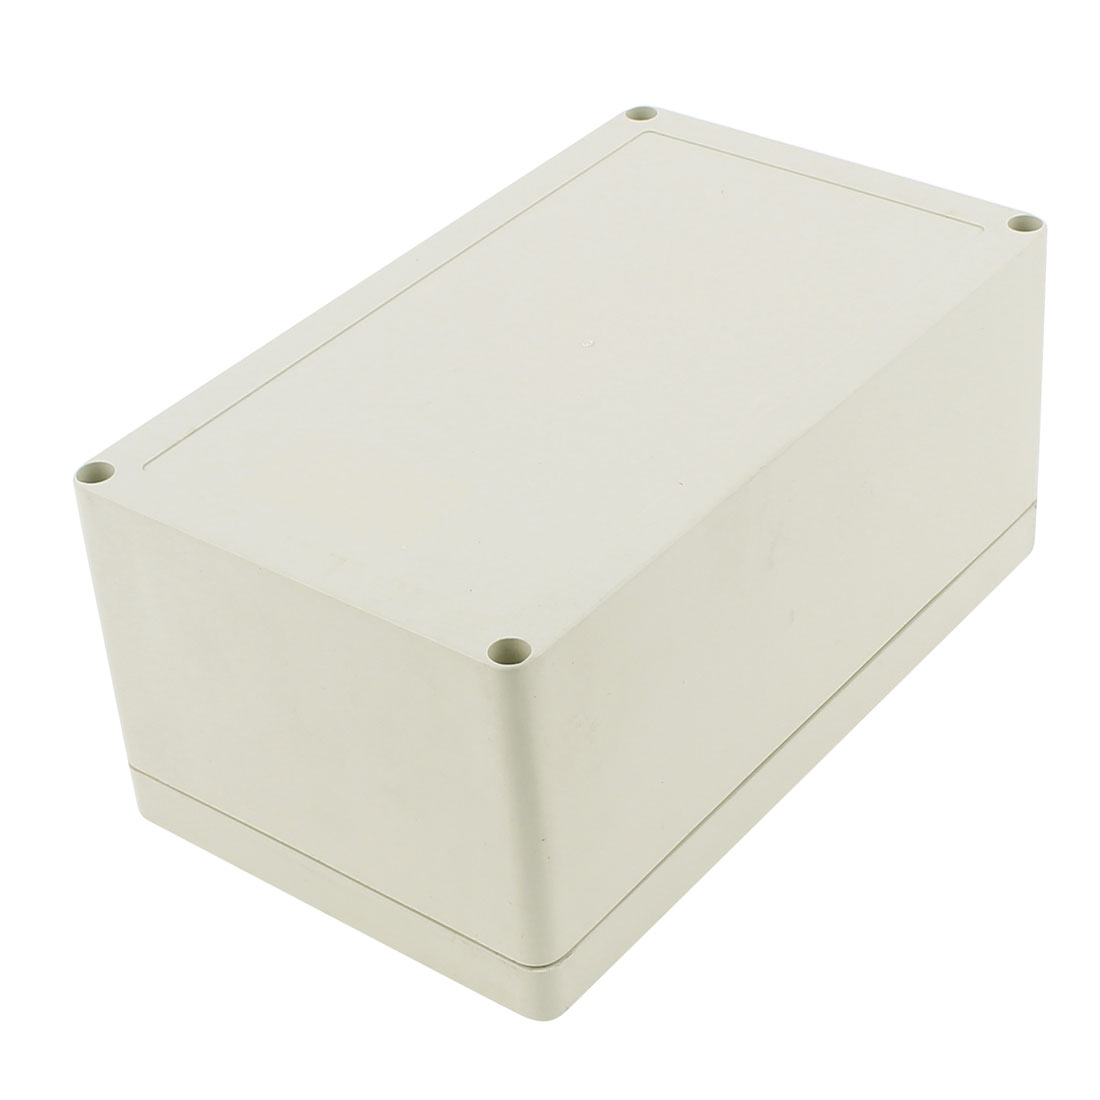 200 x 120 x 90mm Dustproof IP65 Junction Box Terminal Connection Box Enclosure